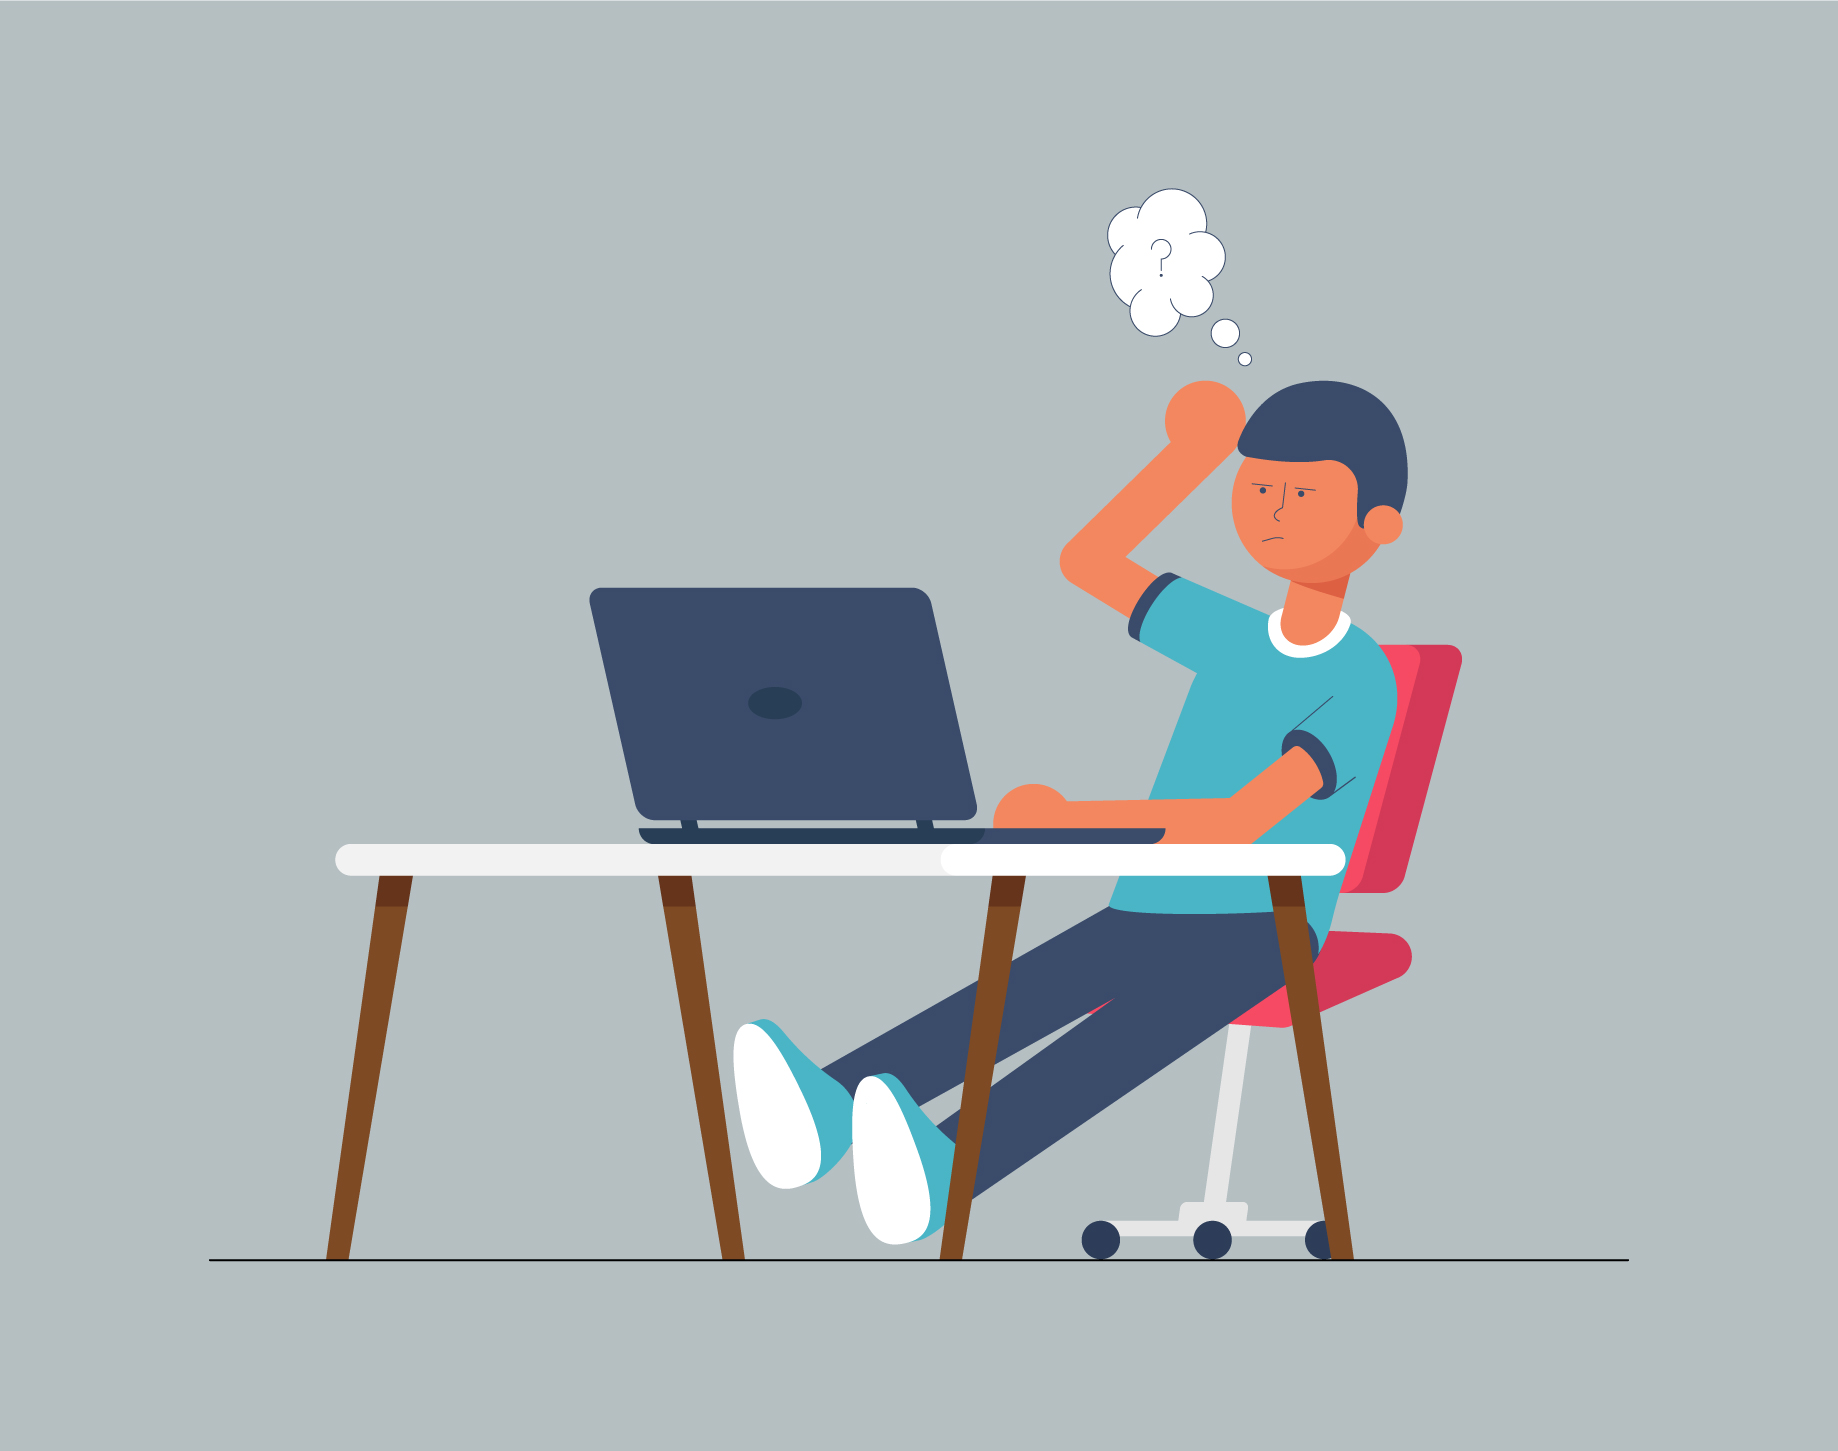 Workplace Vector Illustration